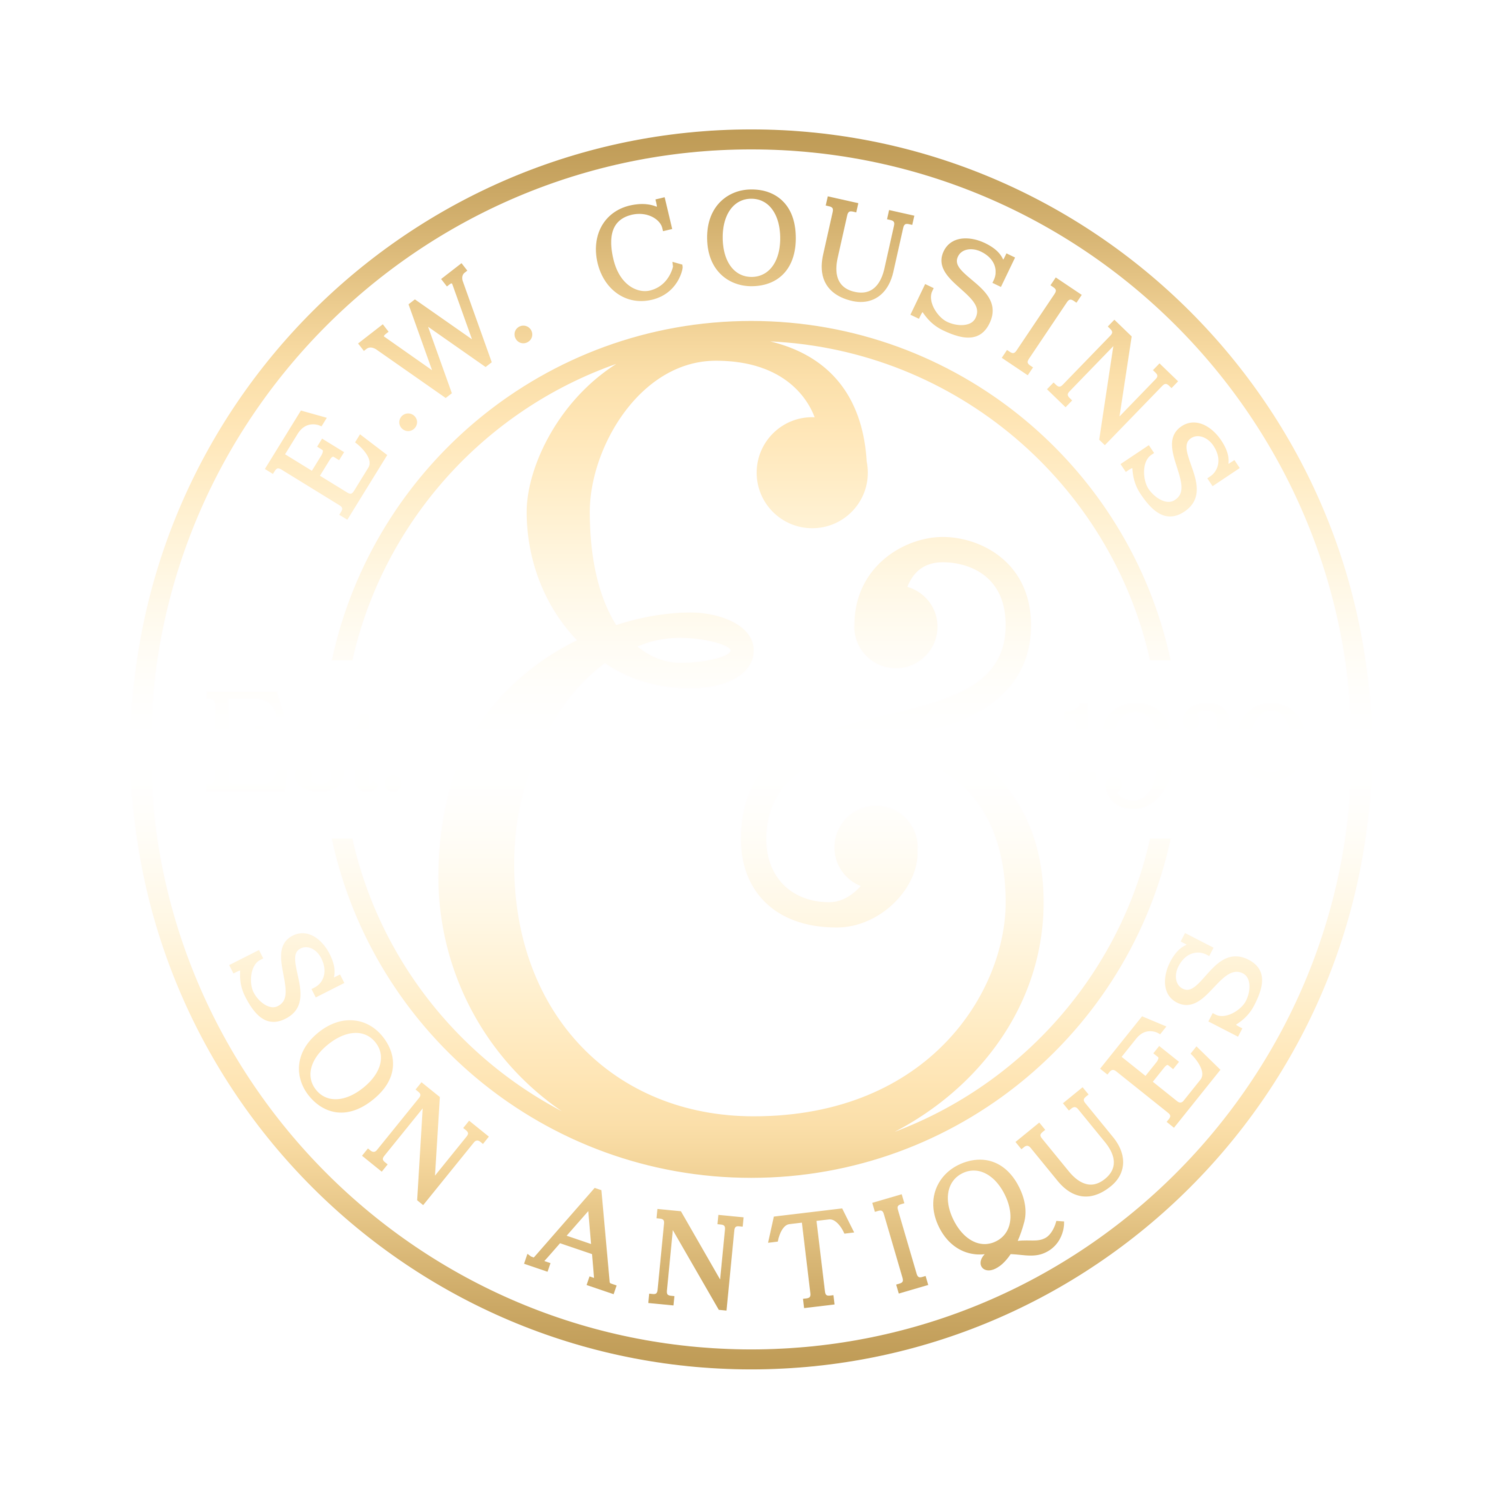 E. W. Cousins & Son. Antique furniture from Early 18C Oak to Edwardian Sheraton. Ixworth, Bury St. Edmunds, Suffolk